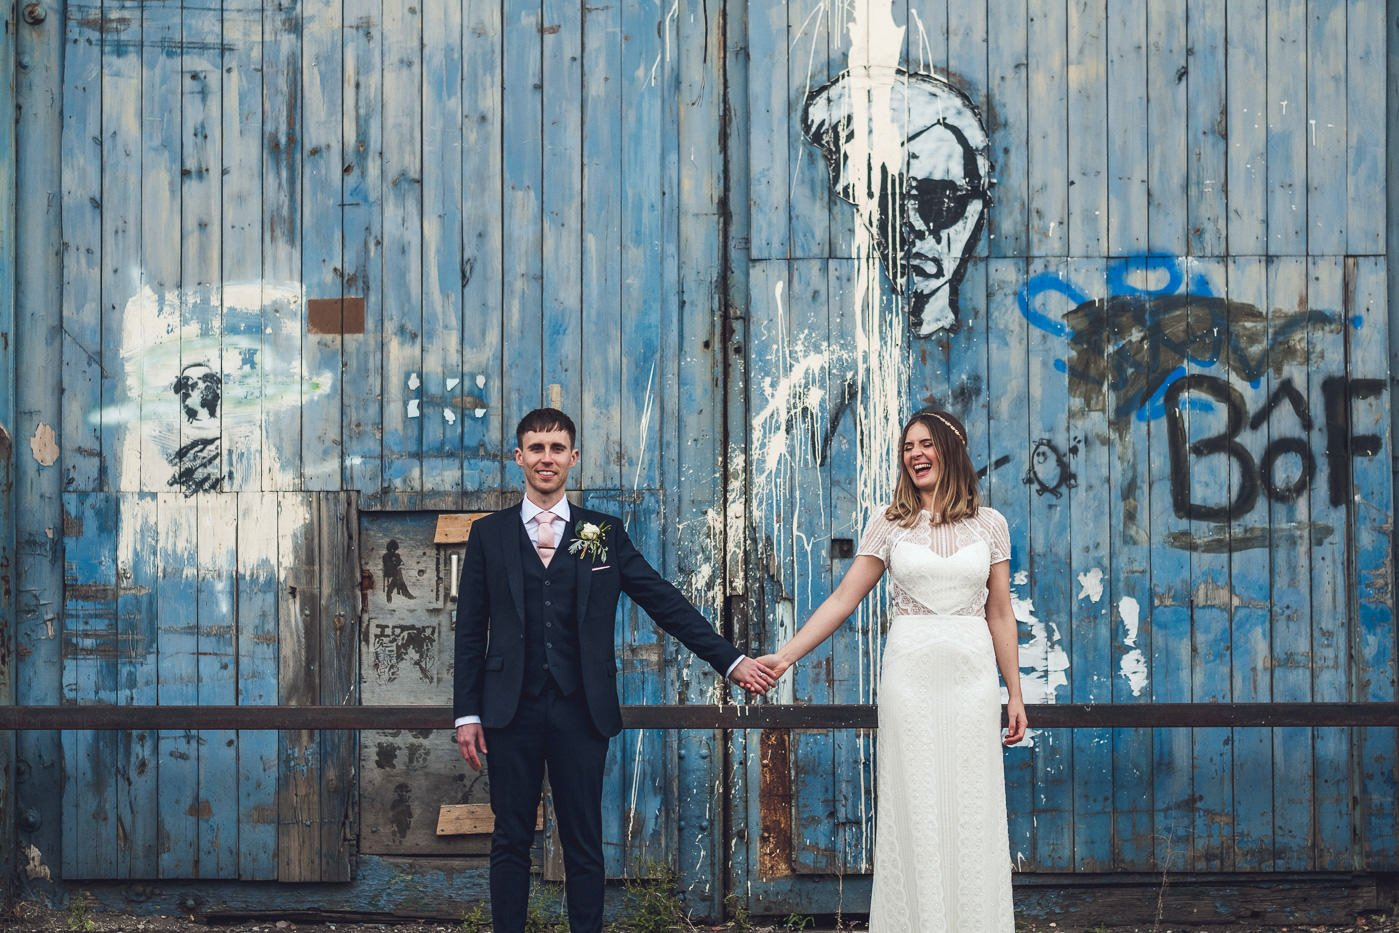 Couples portrait Hope Mill Theatre wedding photography